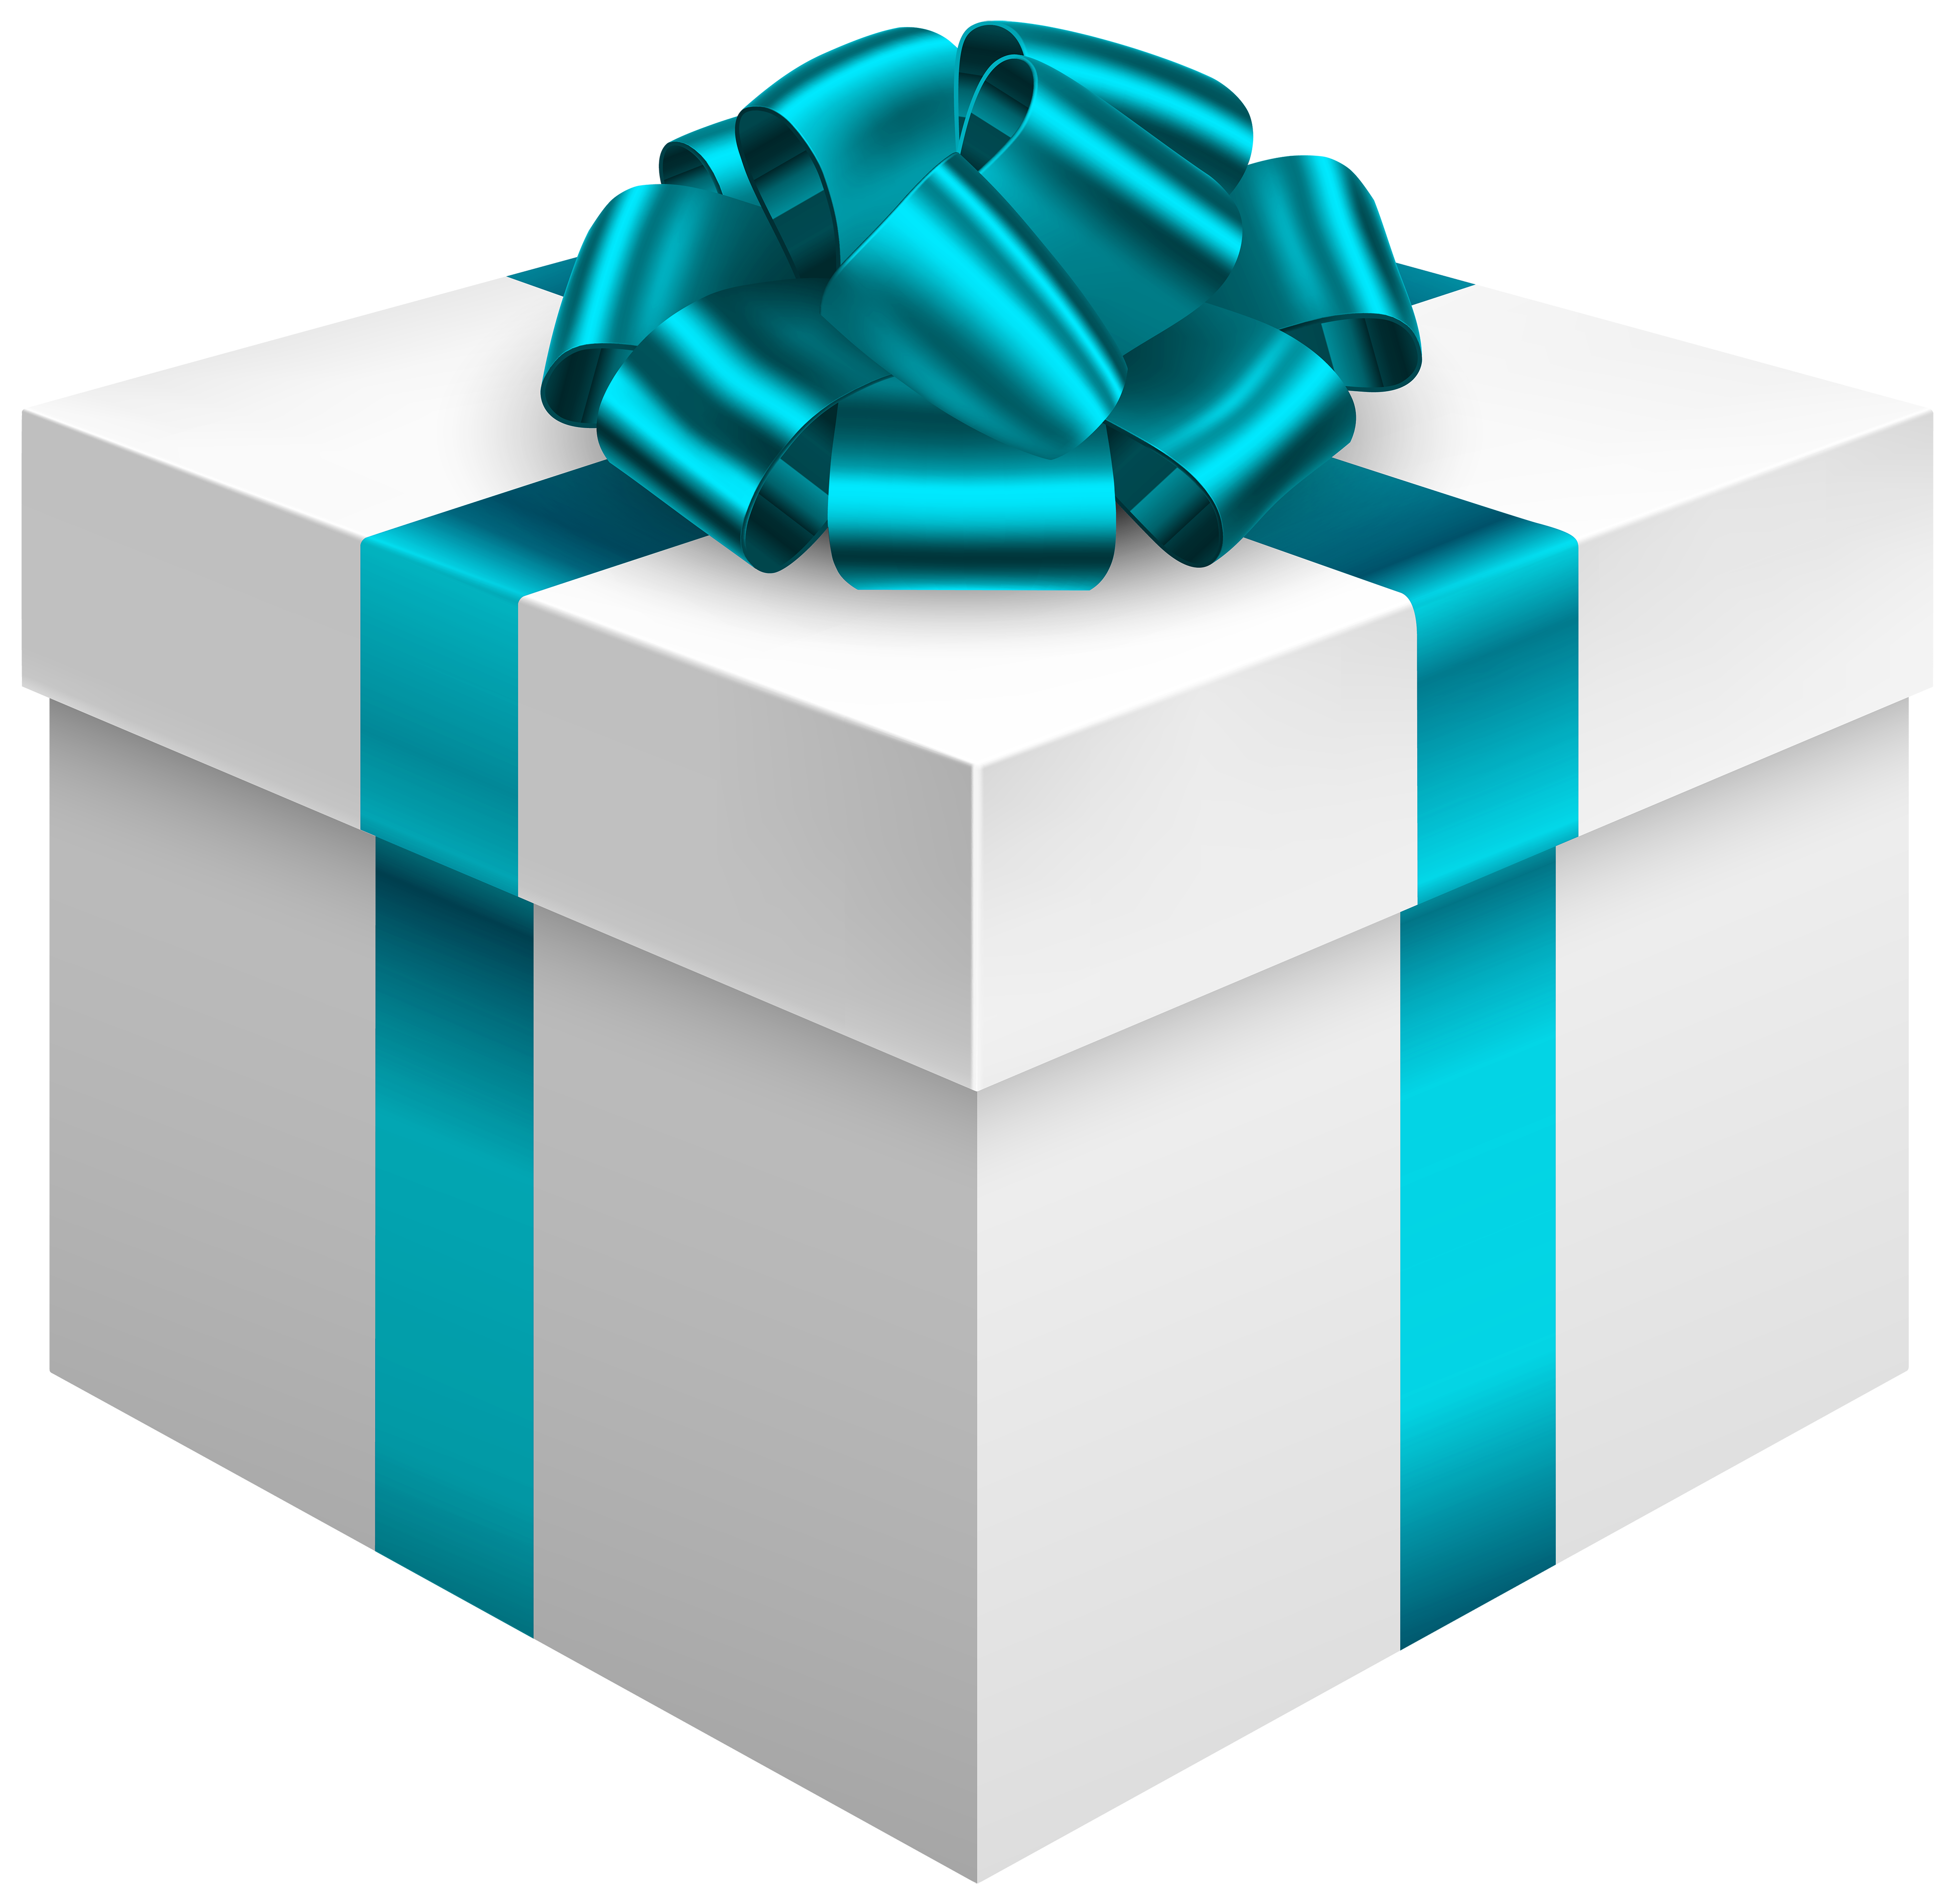 Present clipart blue present. White gift box with